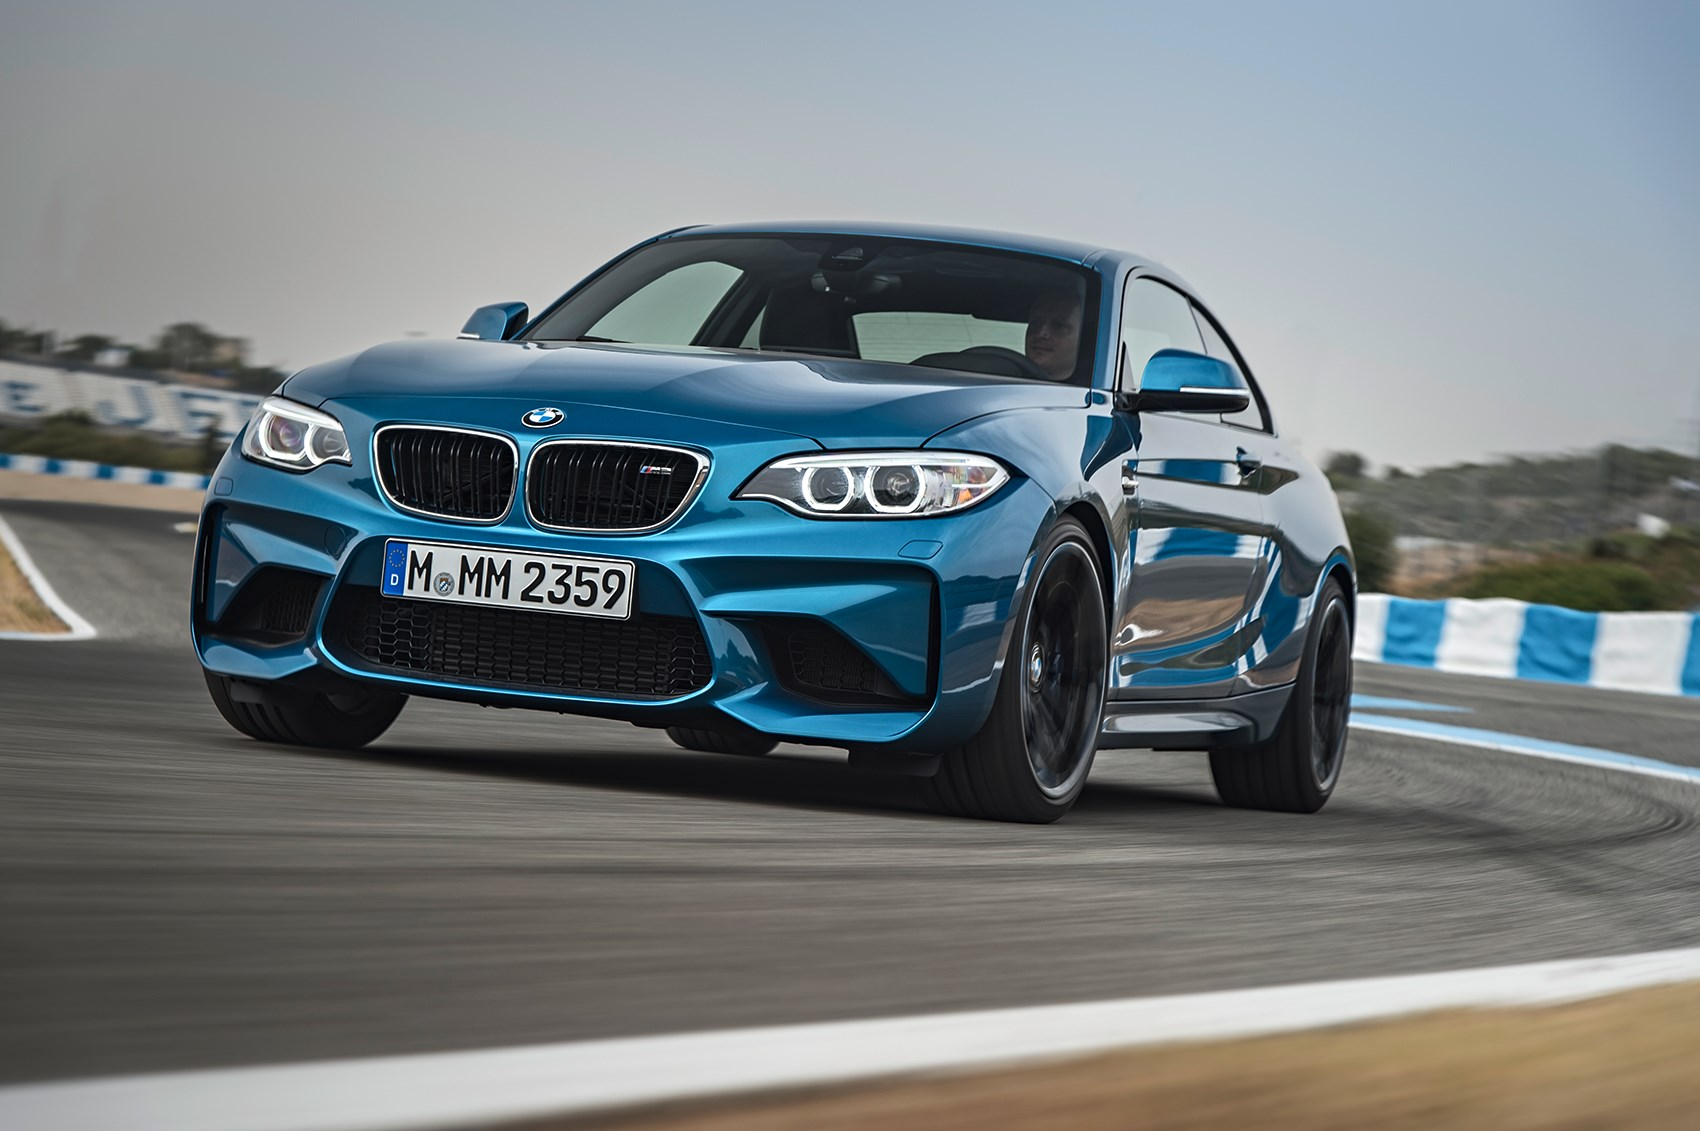 BMW M2 Munich finally upgrades the M235i into a proper M sports